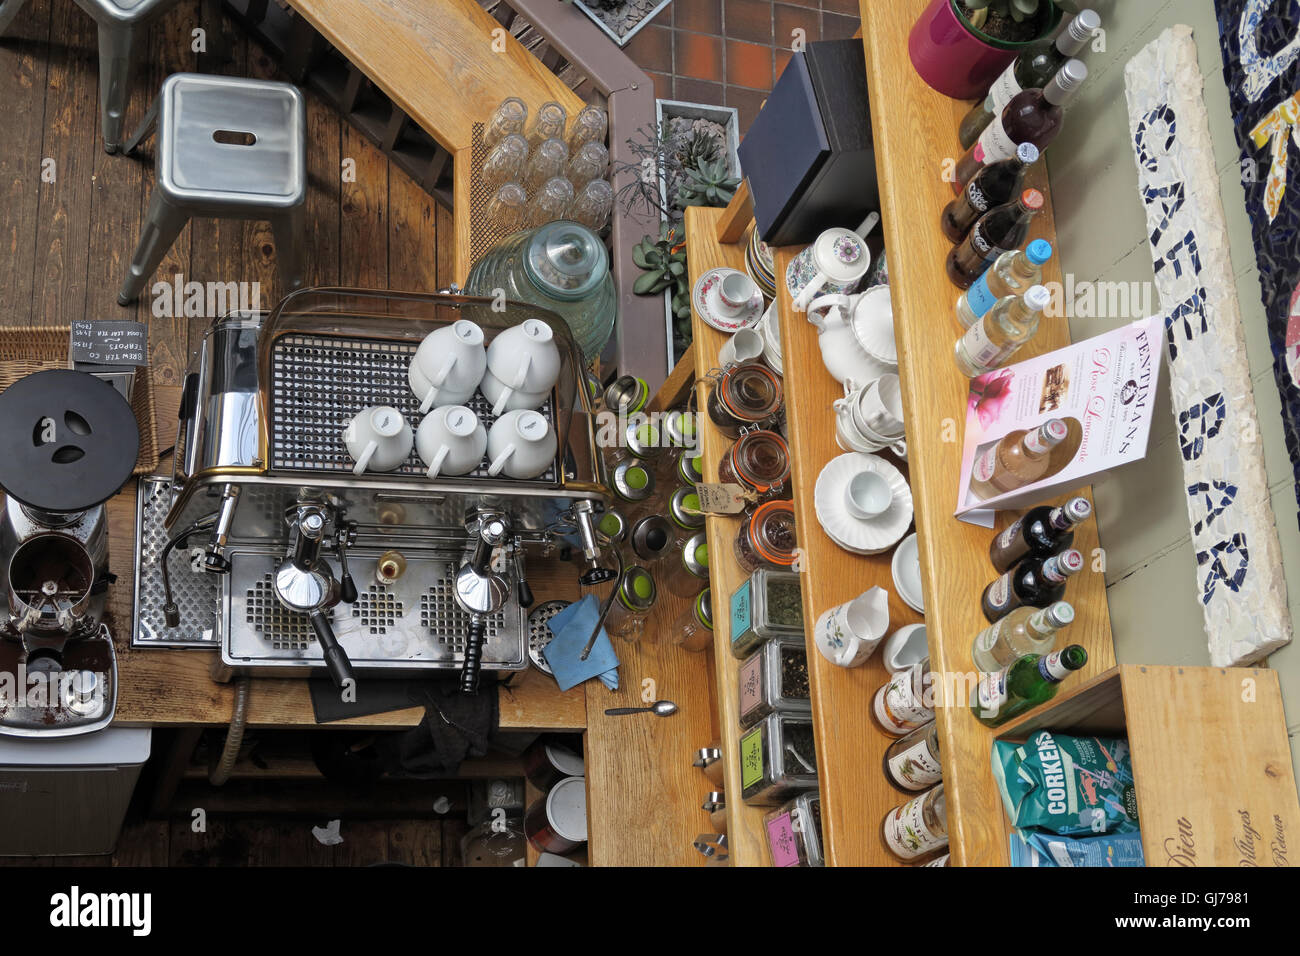 Manchester Craft and Design Centre Cafe, 17 Oak St, Manchester, UK M4 5JD - Stock Image